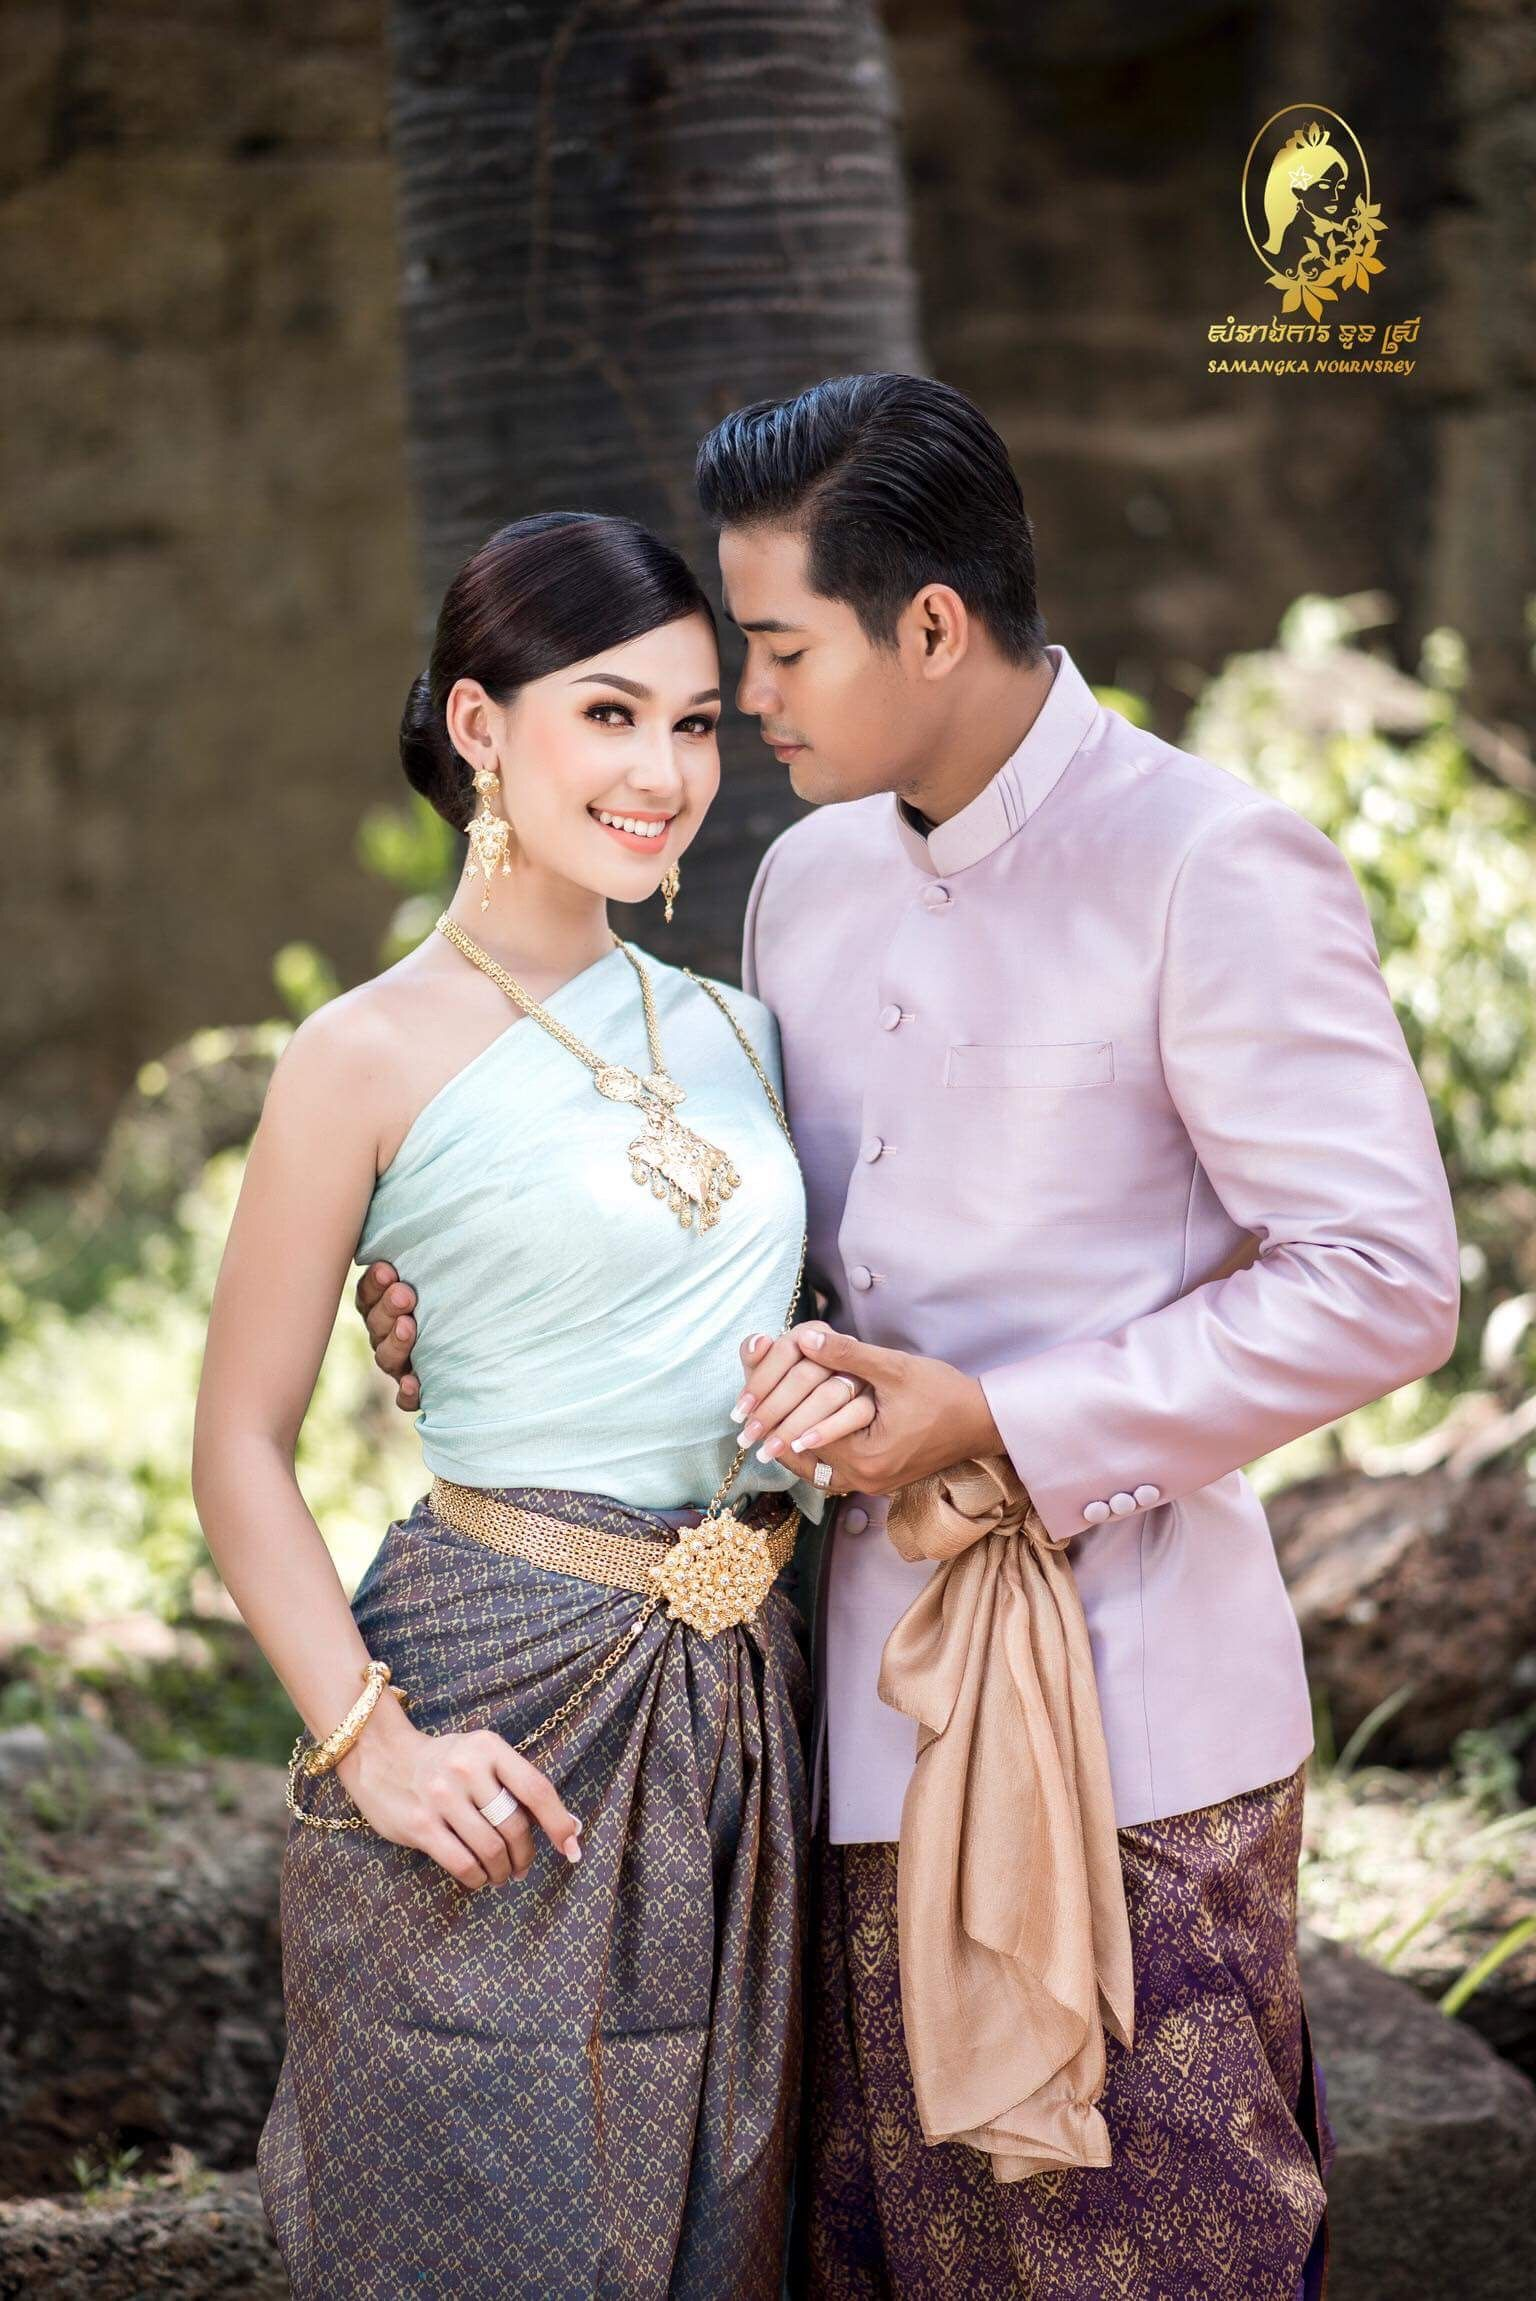 pinsamangka nournsrey on khmer wedding outfits in 2019